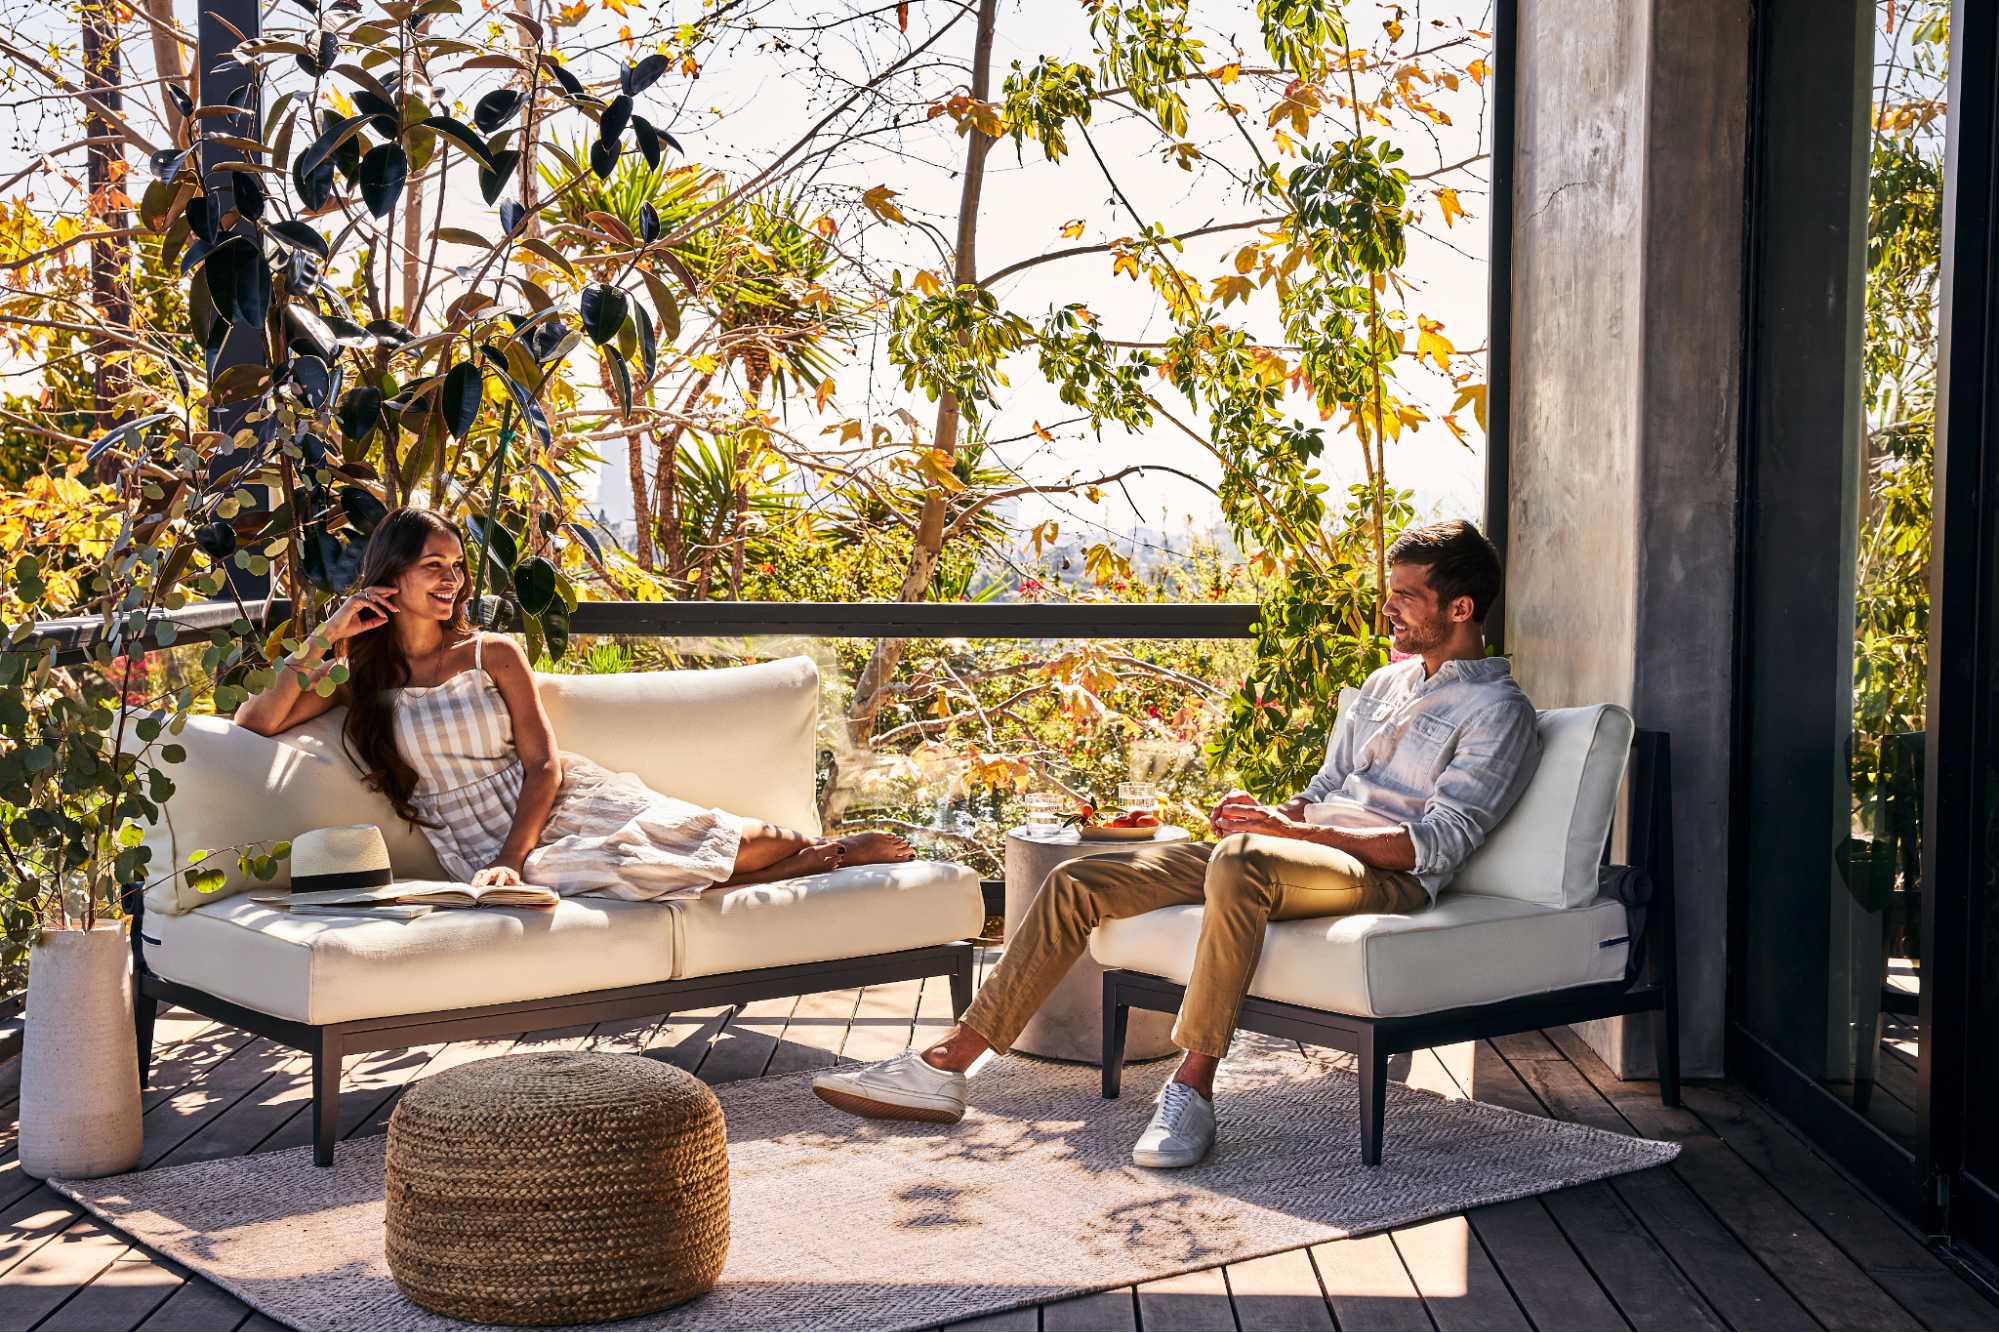 Two people hanging out on aluminum outdoor furniture